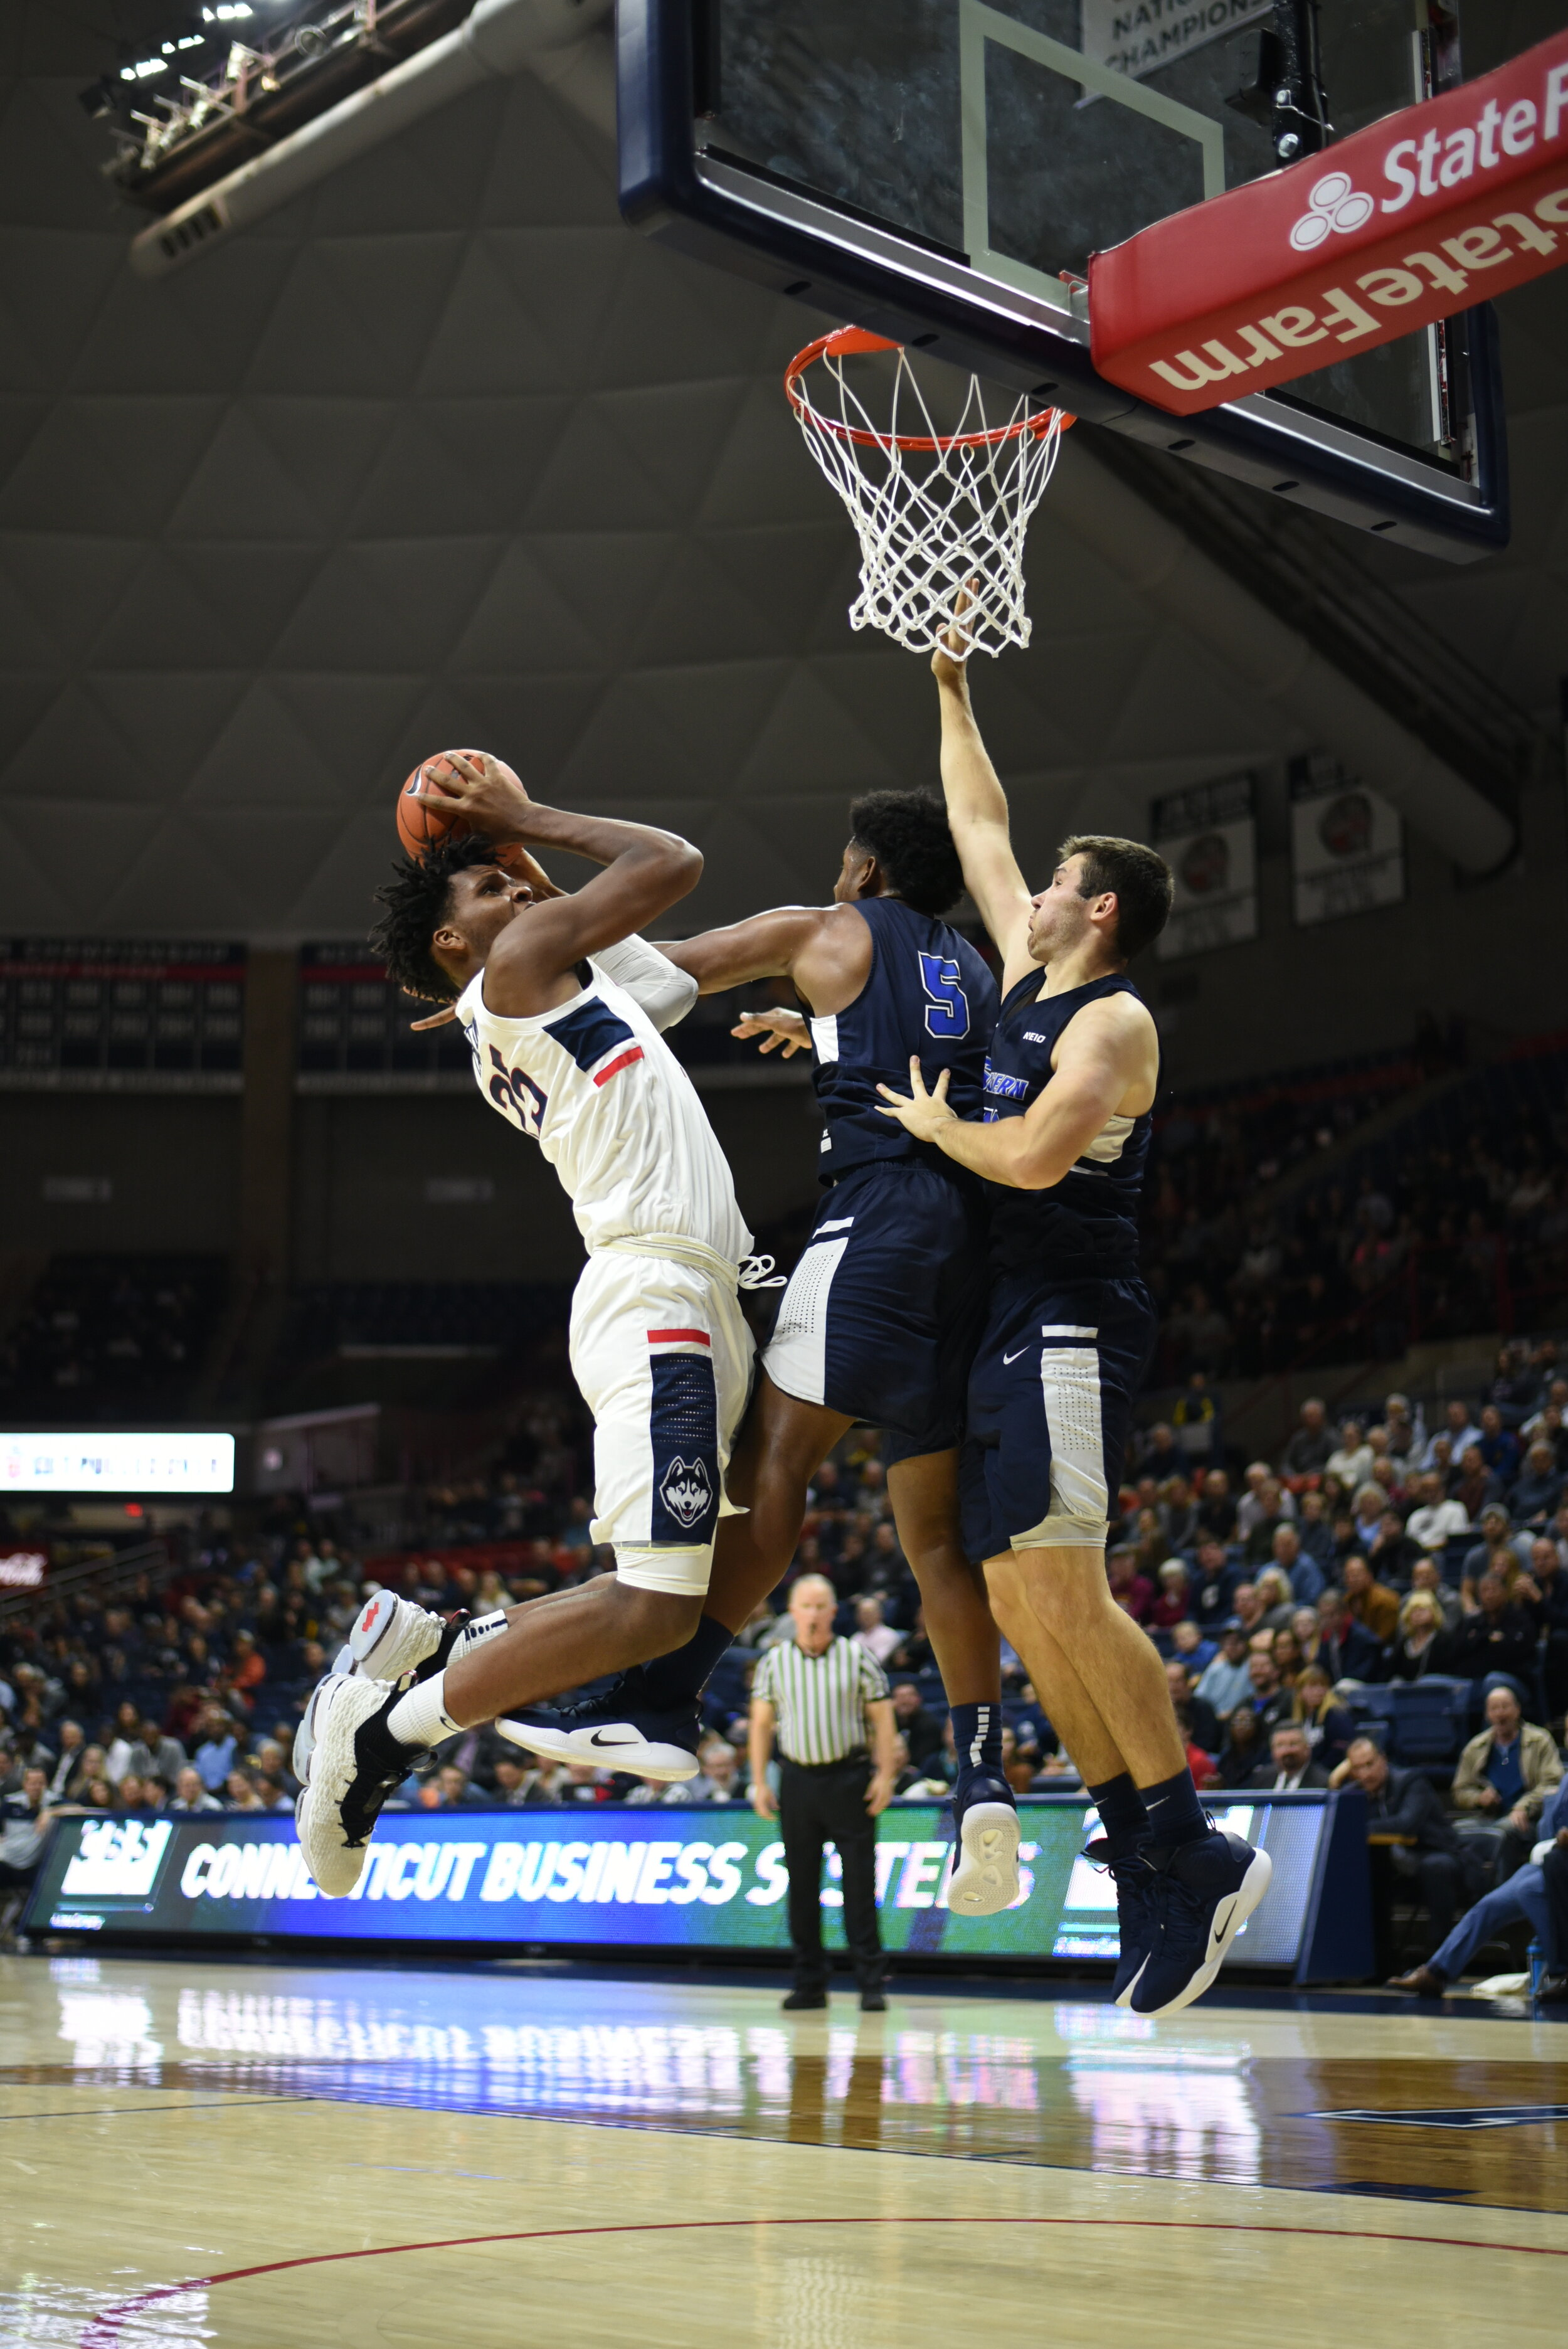 The Huskies defeat Southern Connecticut State University for their home opener on Friday, Nov. 1, 2018.  Photo by Charlotte Lao / The Daily Campus